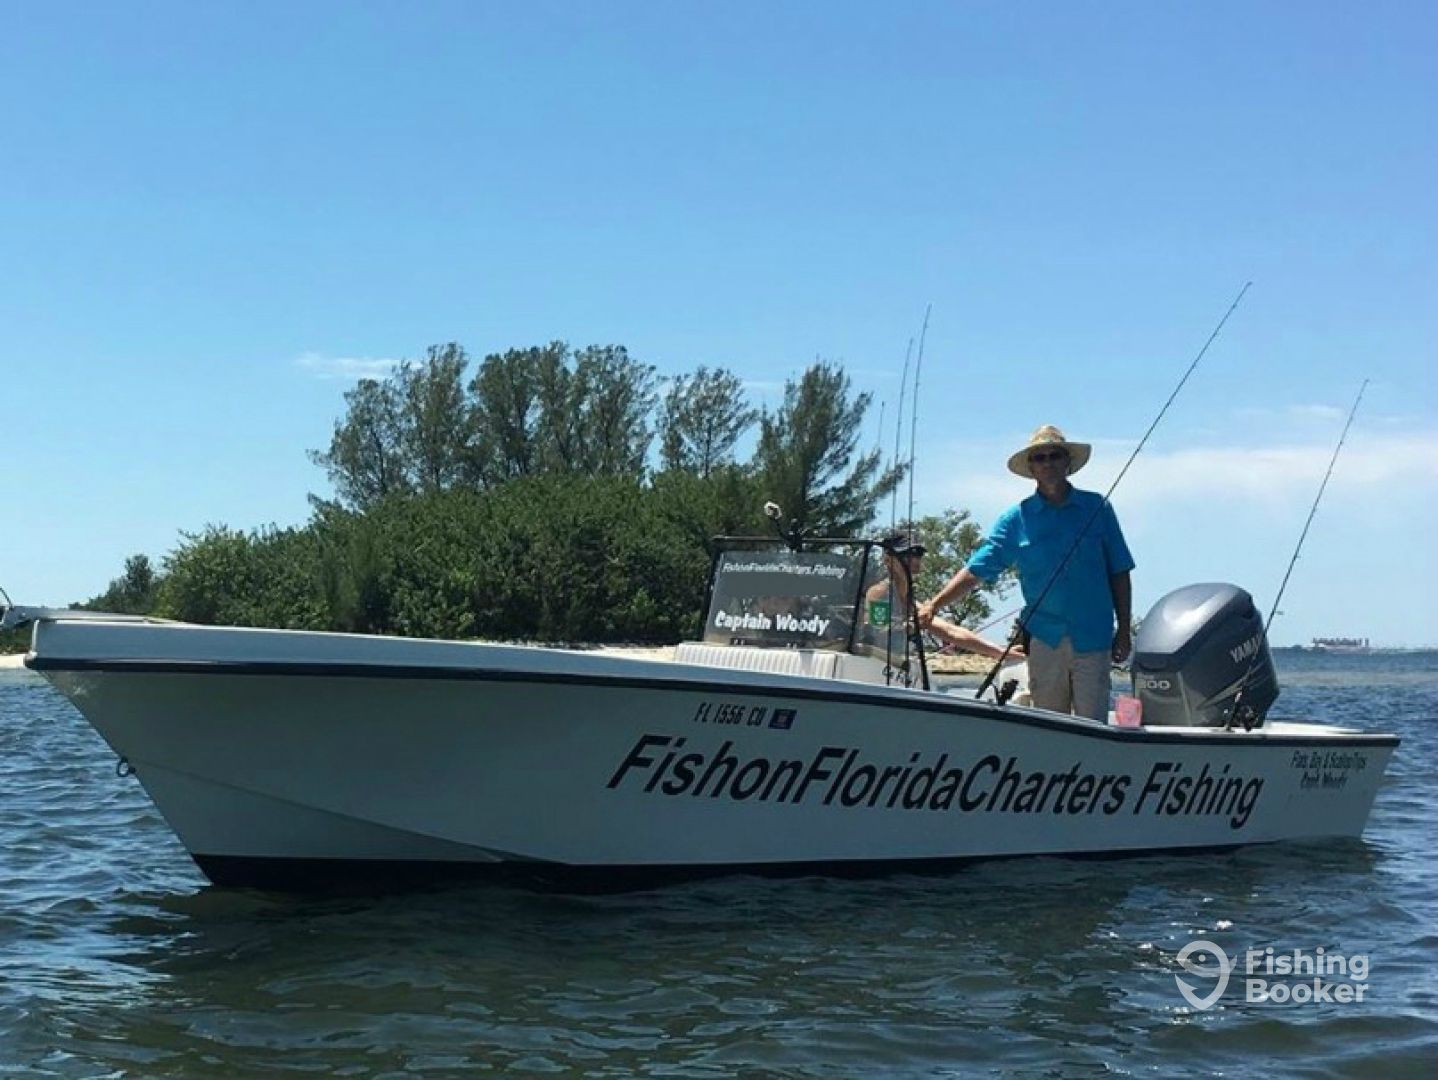 Fish on florida charters tampa fl fishingbooker for Florida fishing trips